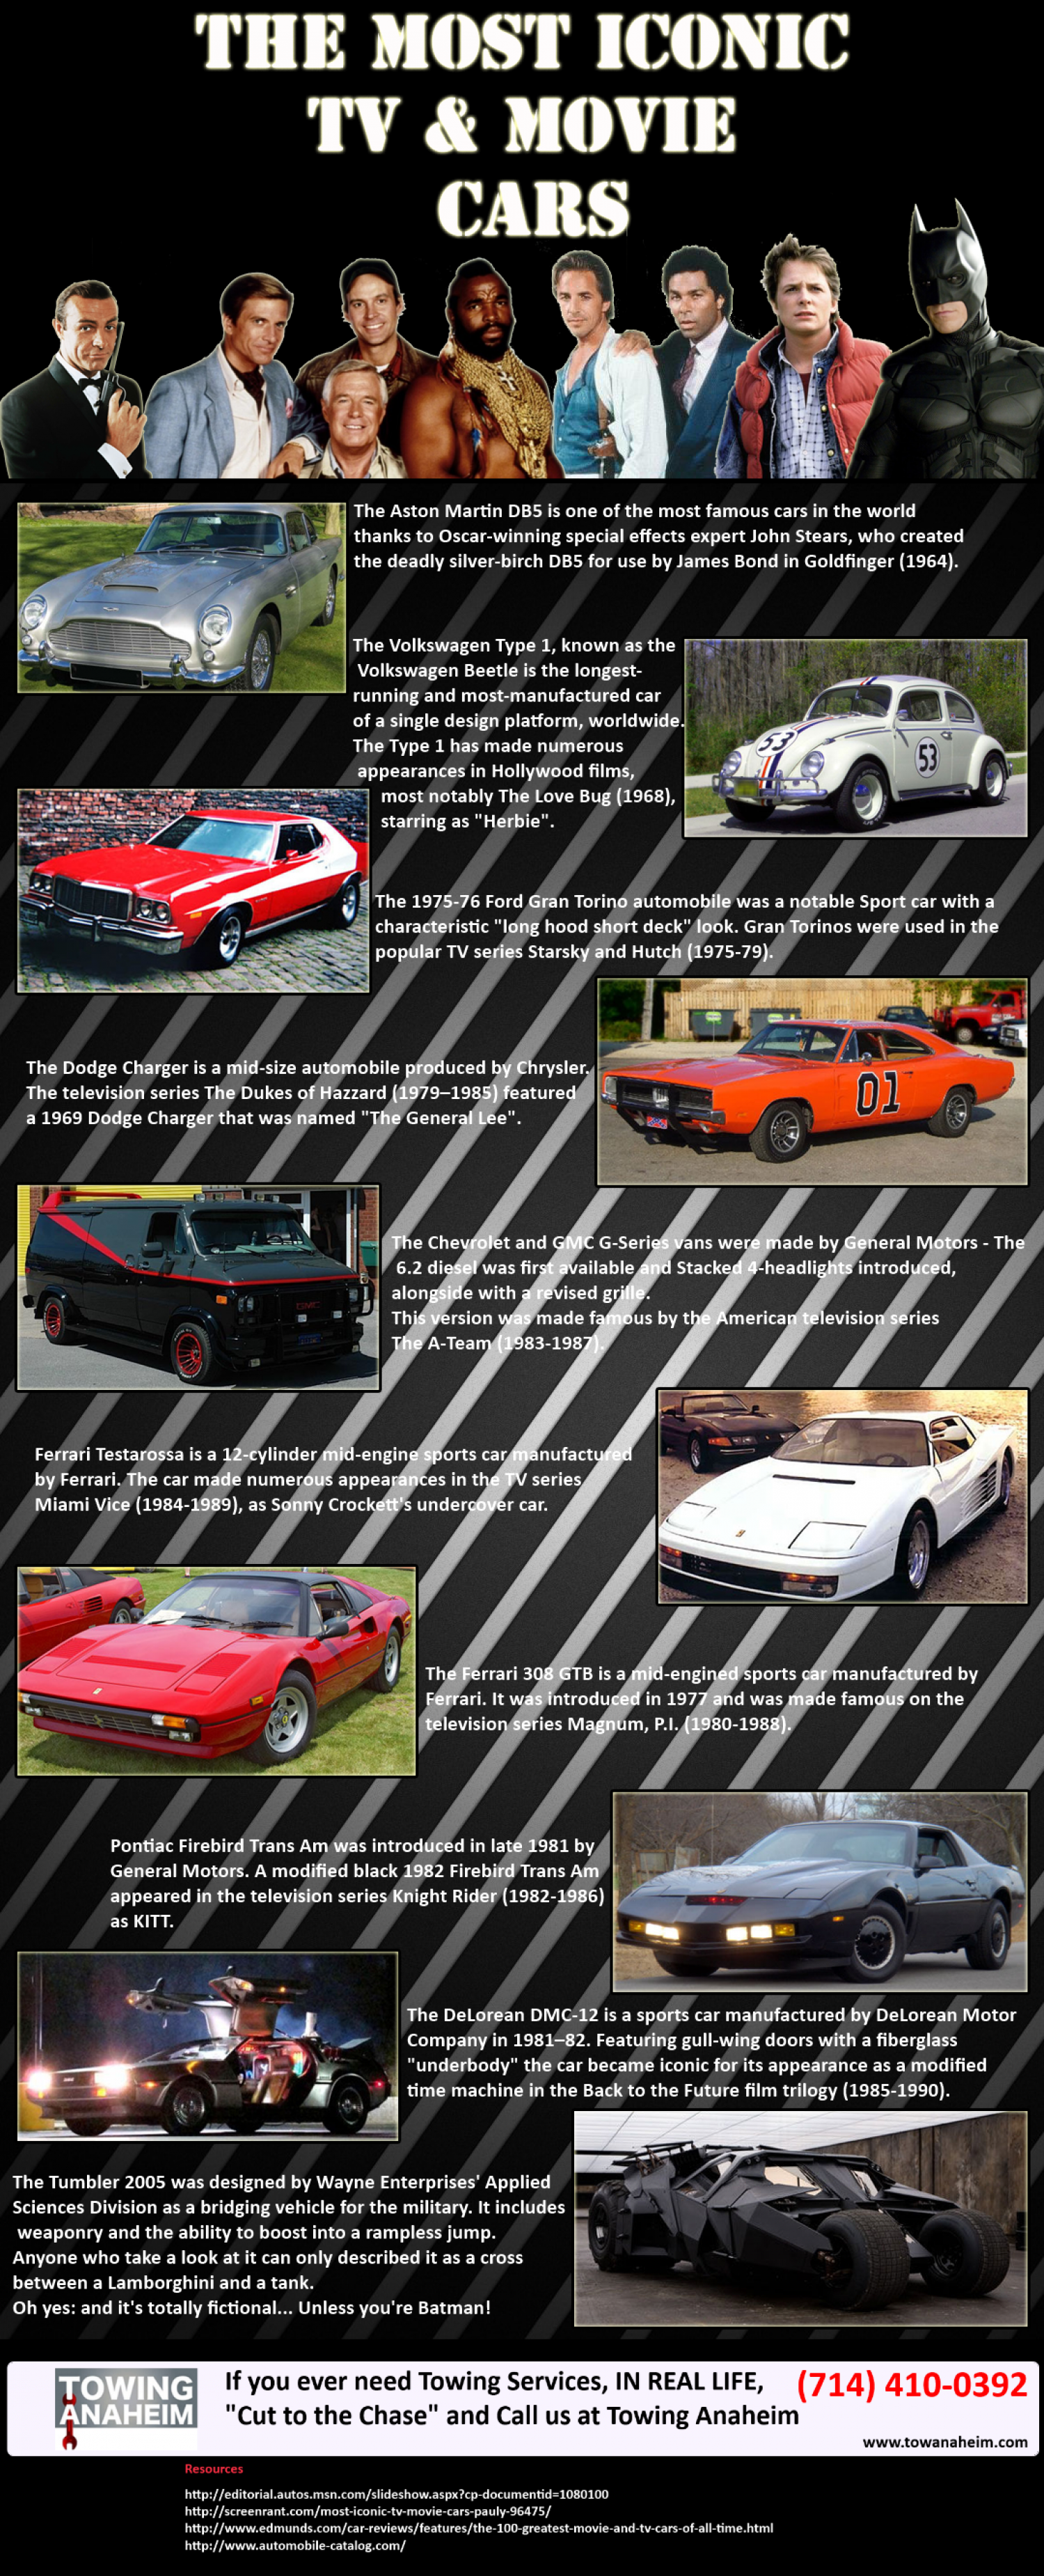 The Most Iconic TV & Movie Cars Infographic